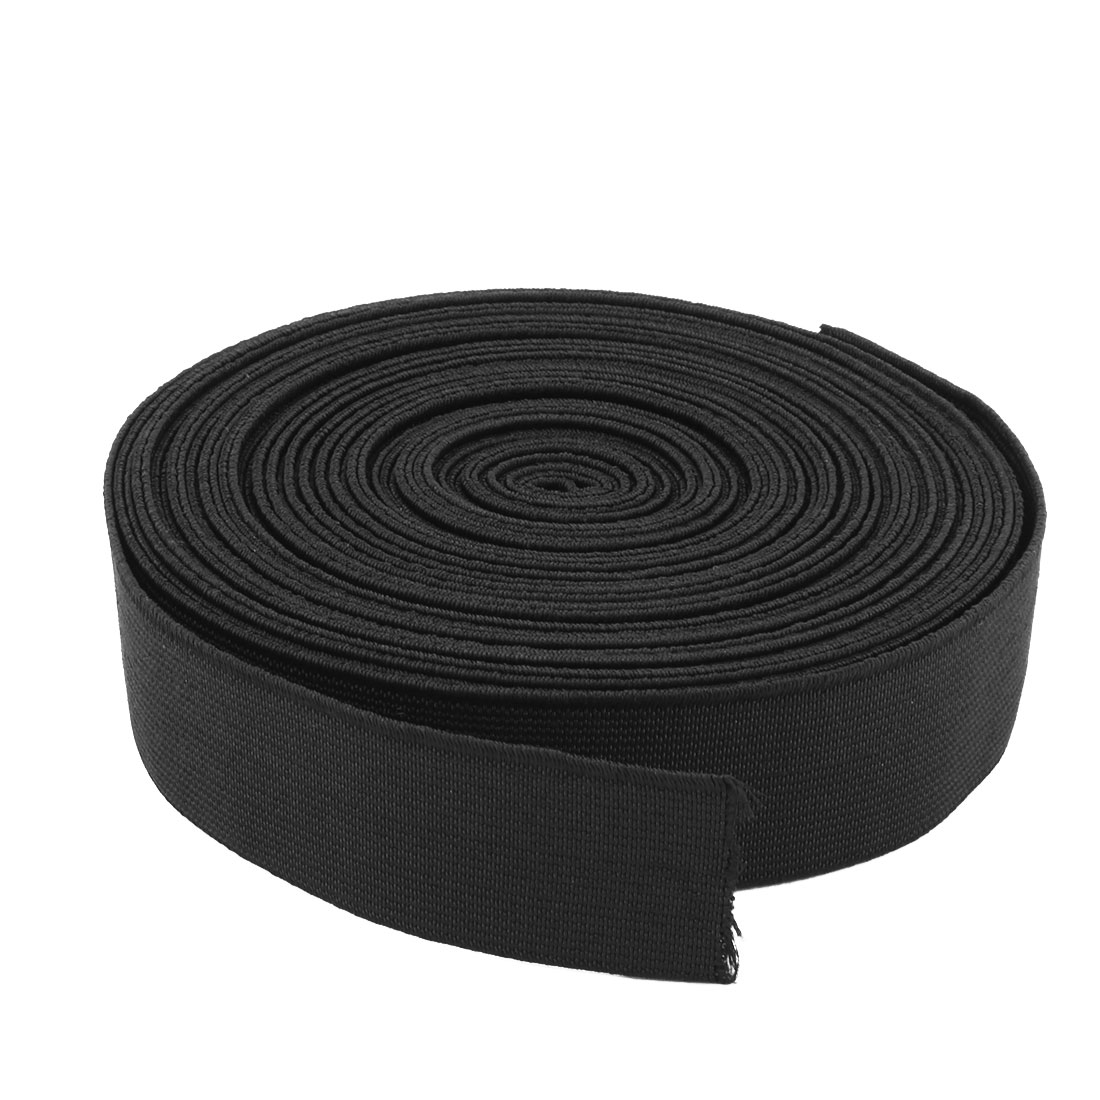 Tailoring Polyester Sewing Stretchy Braided Elastic Band Strap Black 10.94 Yards